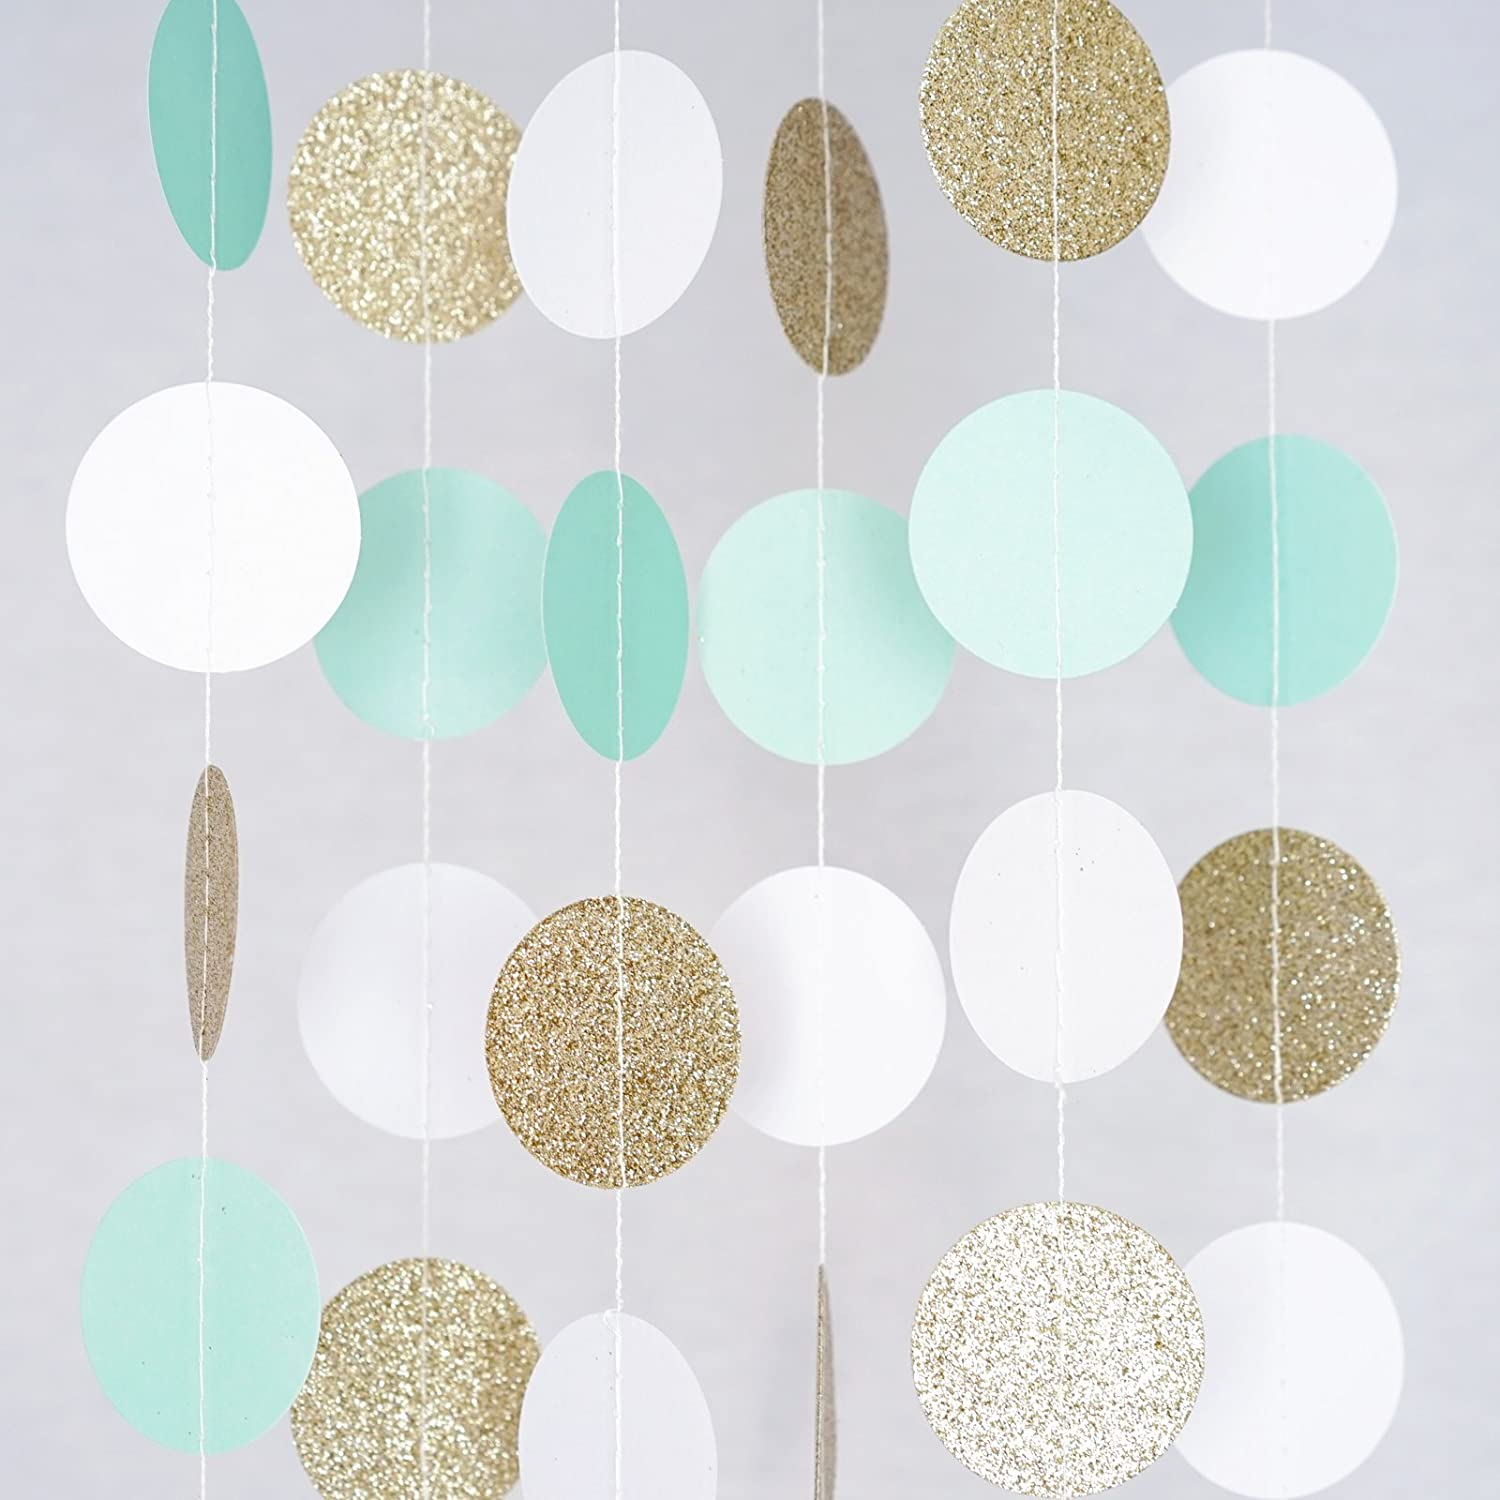 Circle Dots Paper Party Garland Streamer Backdrop (10 Feet Long) - Mint, White, Gold Glitter